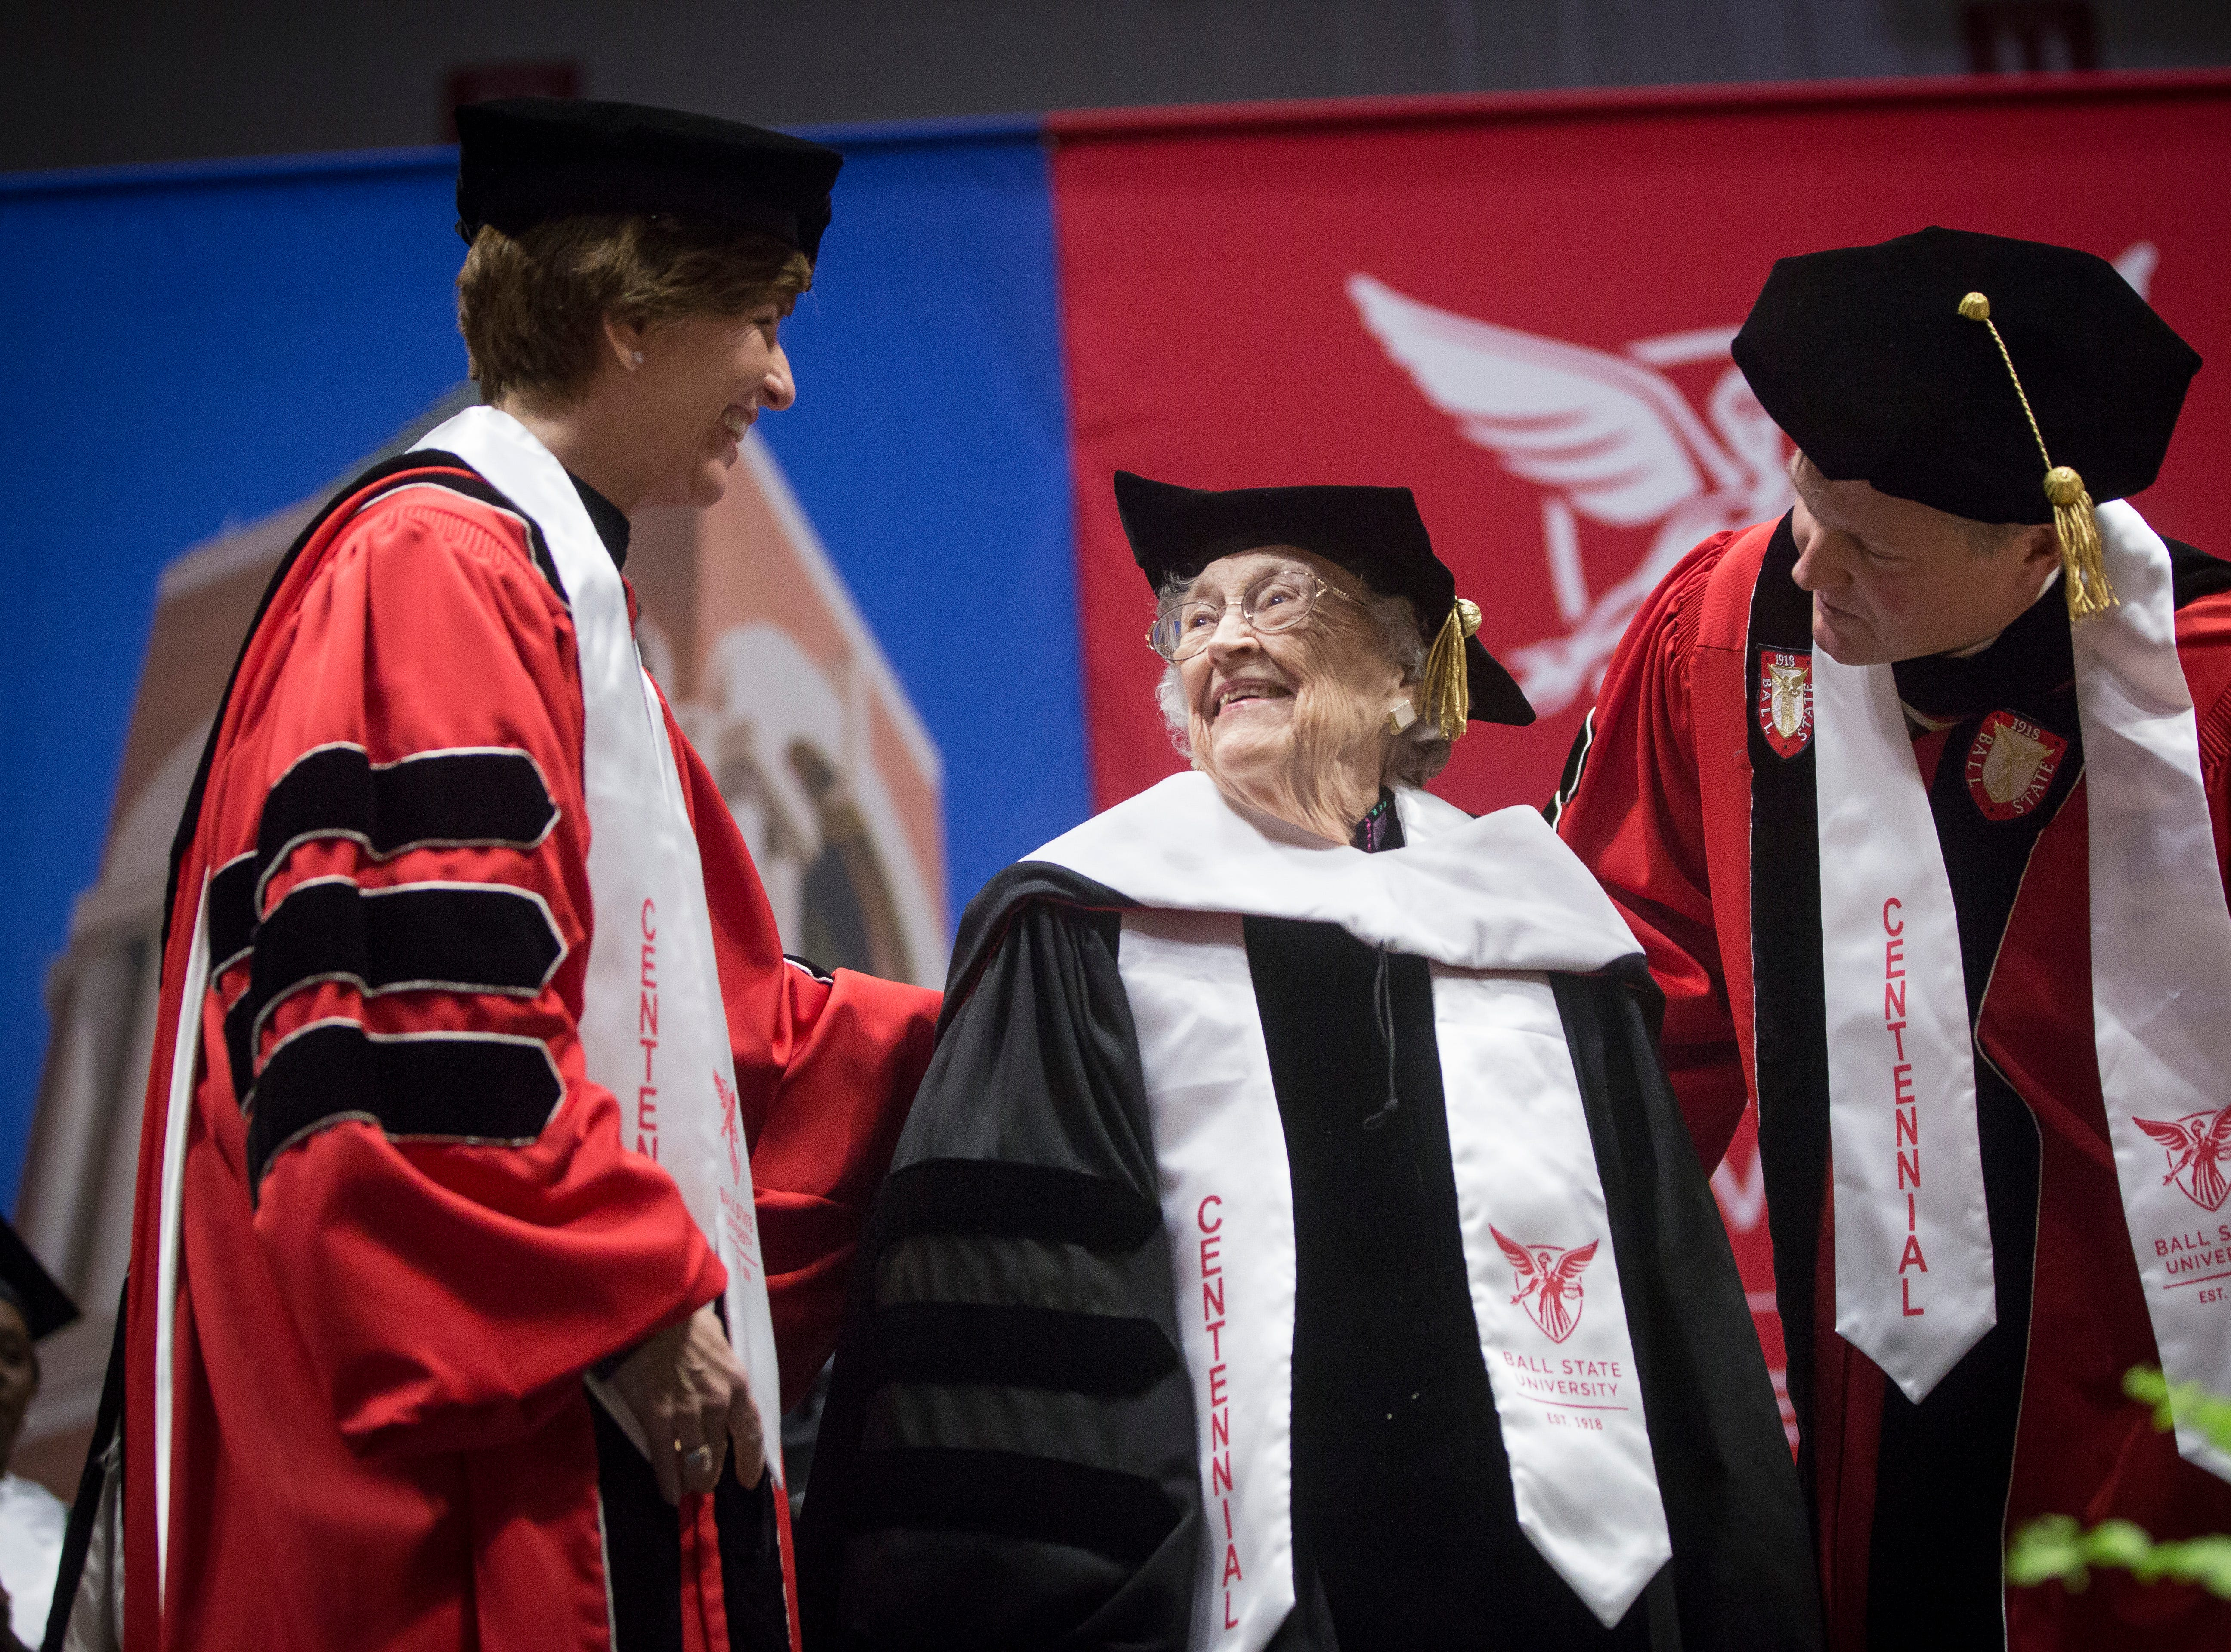 Lucina Ball Moxley, a 100-year-old descendant of the Ball family accepts an honorary doctorate of arts from the university on May 4 during Ball State University's Spring Commencement inside Worthen Arena. Moxley is the granddaughter of William C. Ball, one of the five Ball brothers who founded the University a century ago.